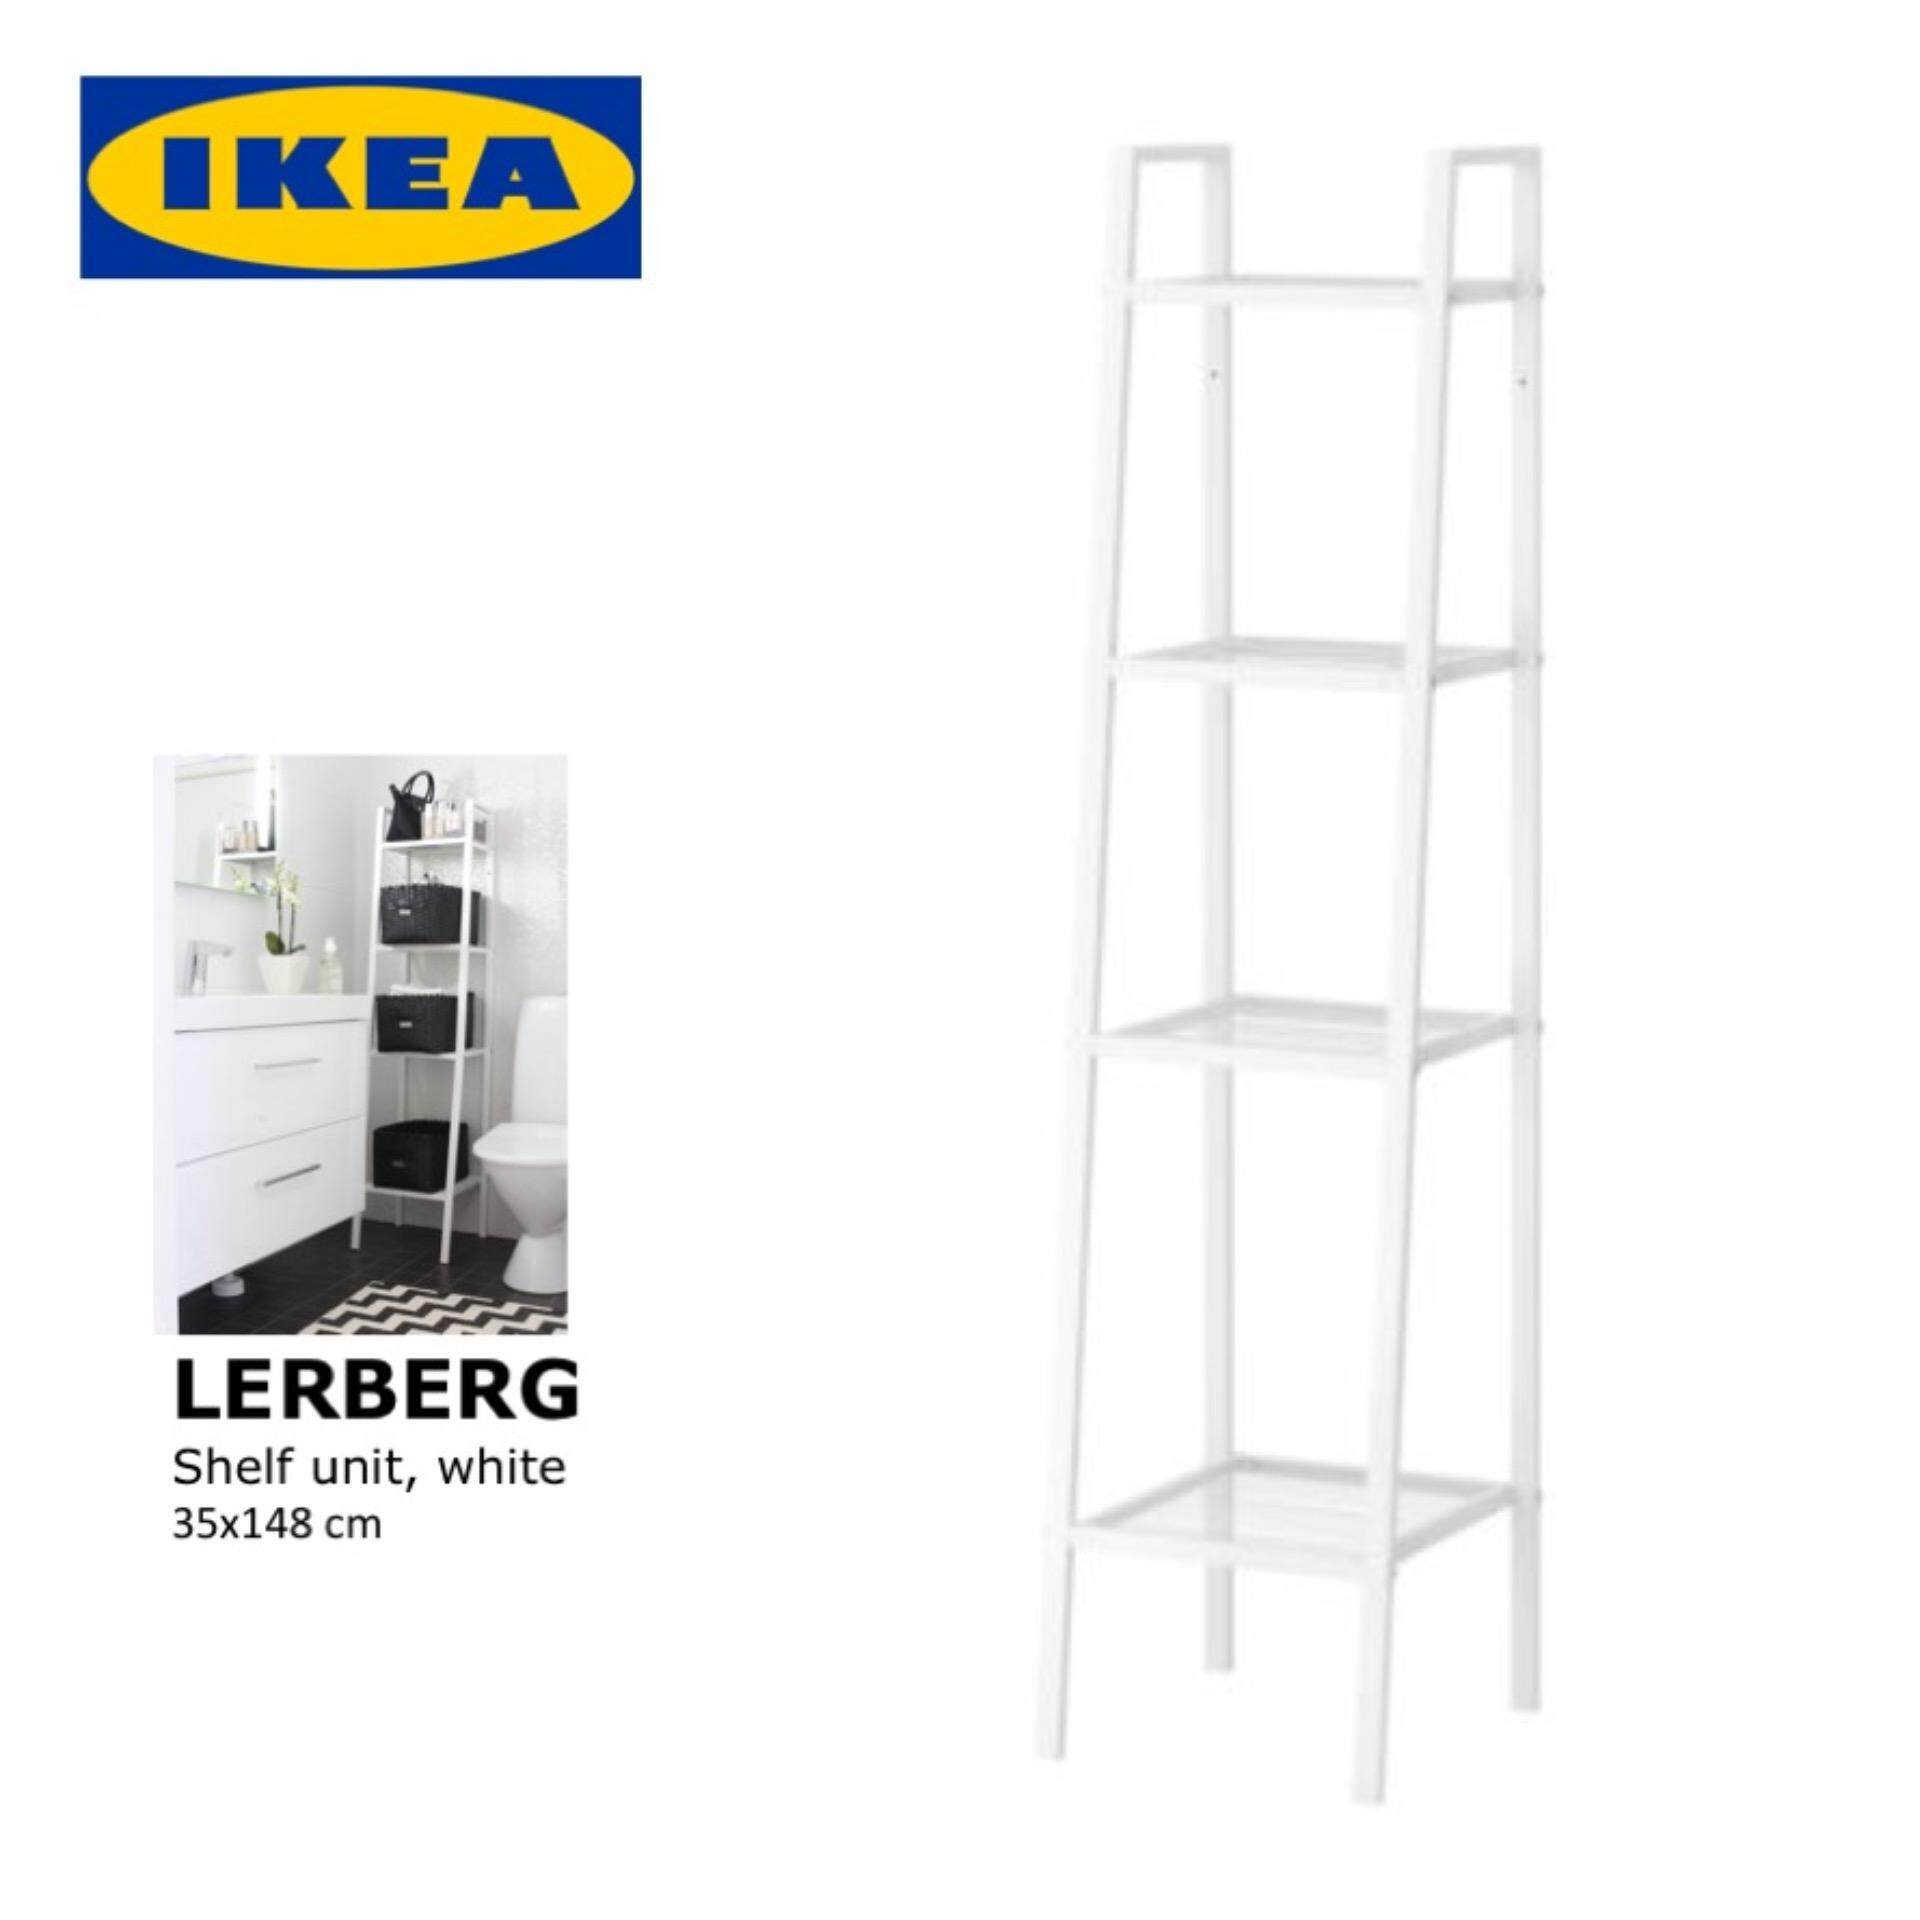 Ikea lerberg  IKEA LERBERG Open Shelf unit/ Book Shelf/Bathroom Shelf , 35x148 ...